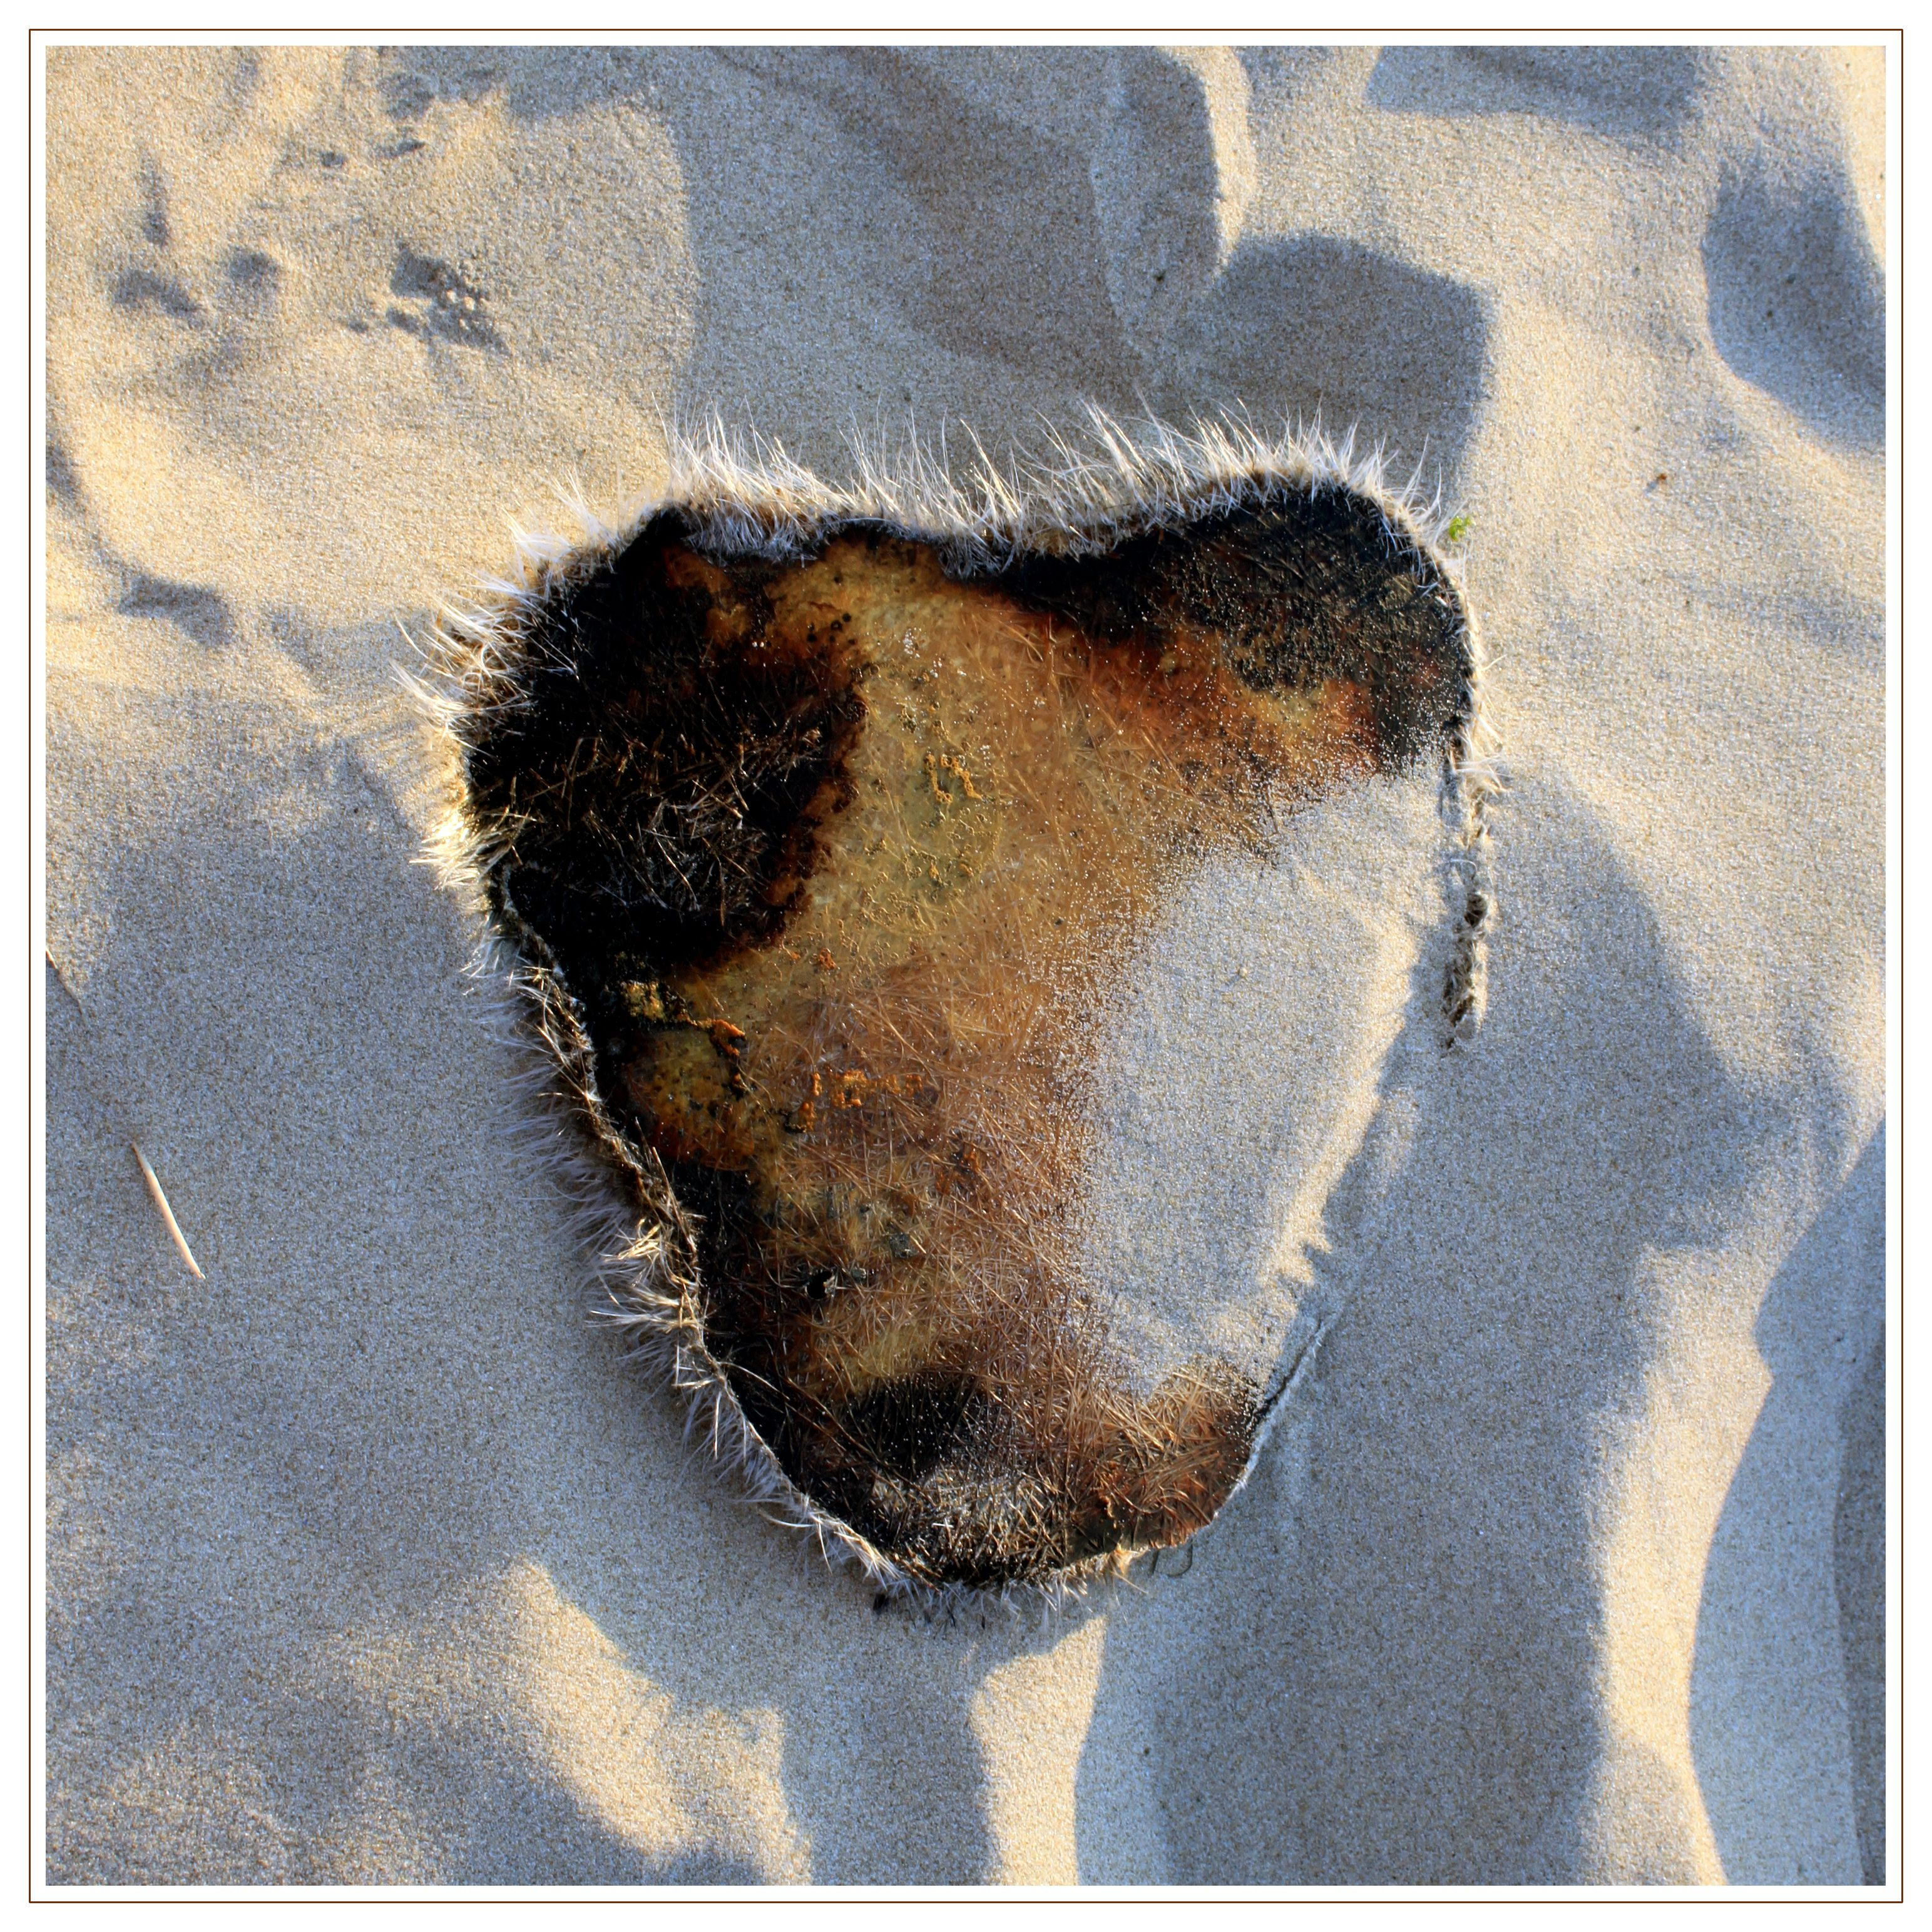 #heartshaped something, found on the #beach. Near #hargenaanzee and #schoorl.